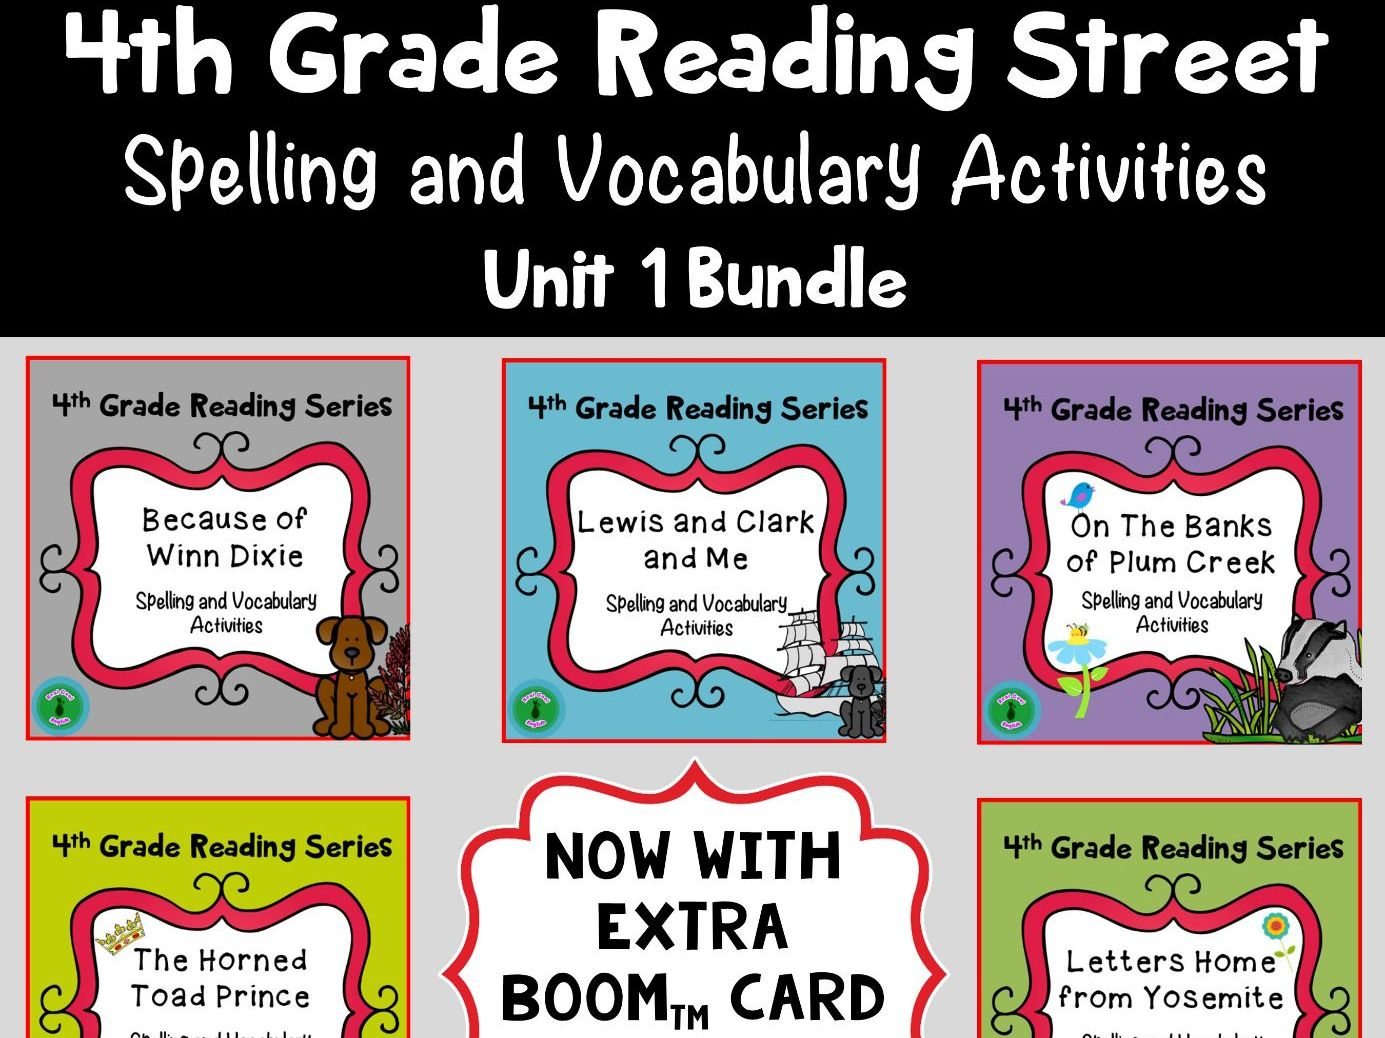 4th Grade Reading Street Spelling and Vocabulary Unit 1 (printable & digital)